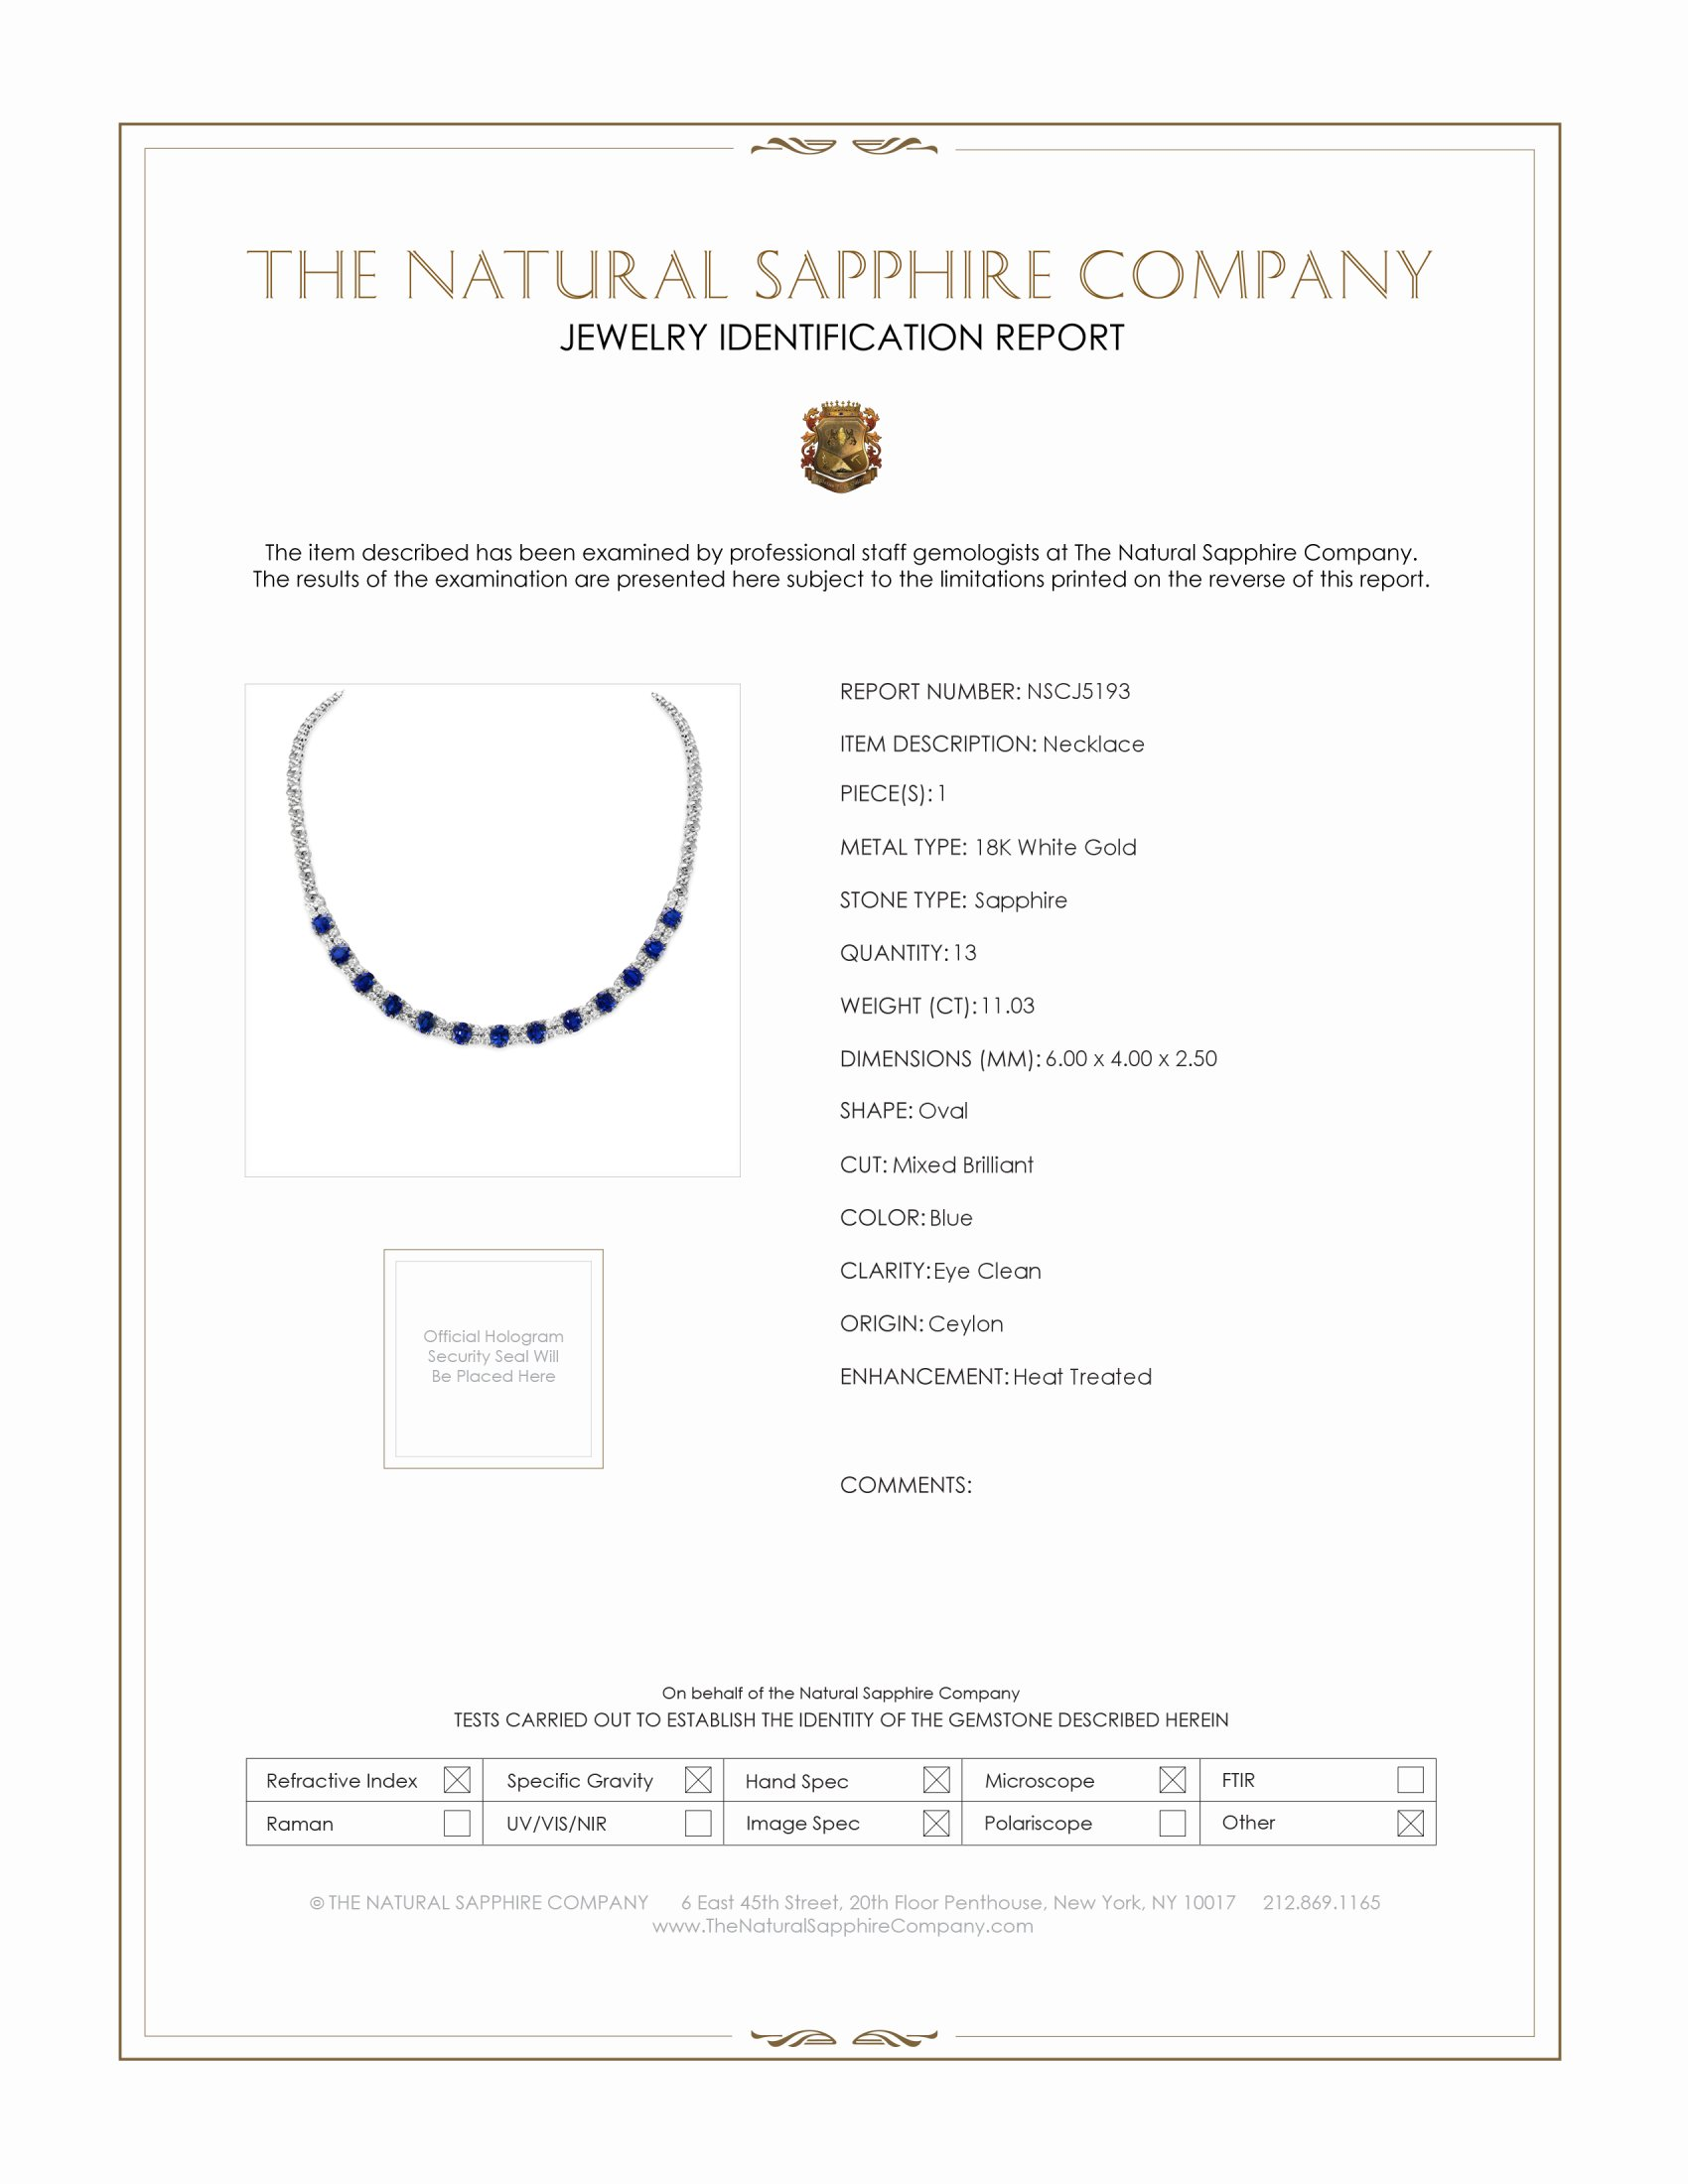 11.03ct Blue Sapphire Necklace Certification